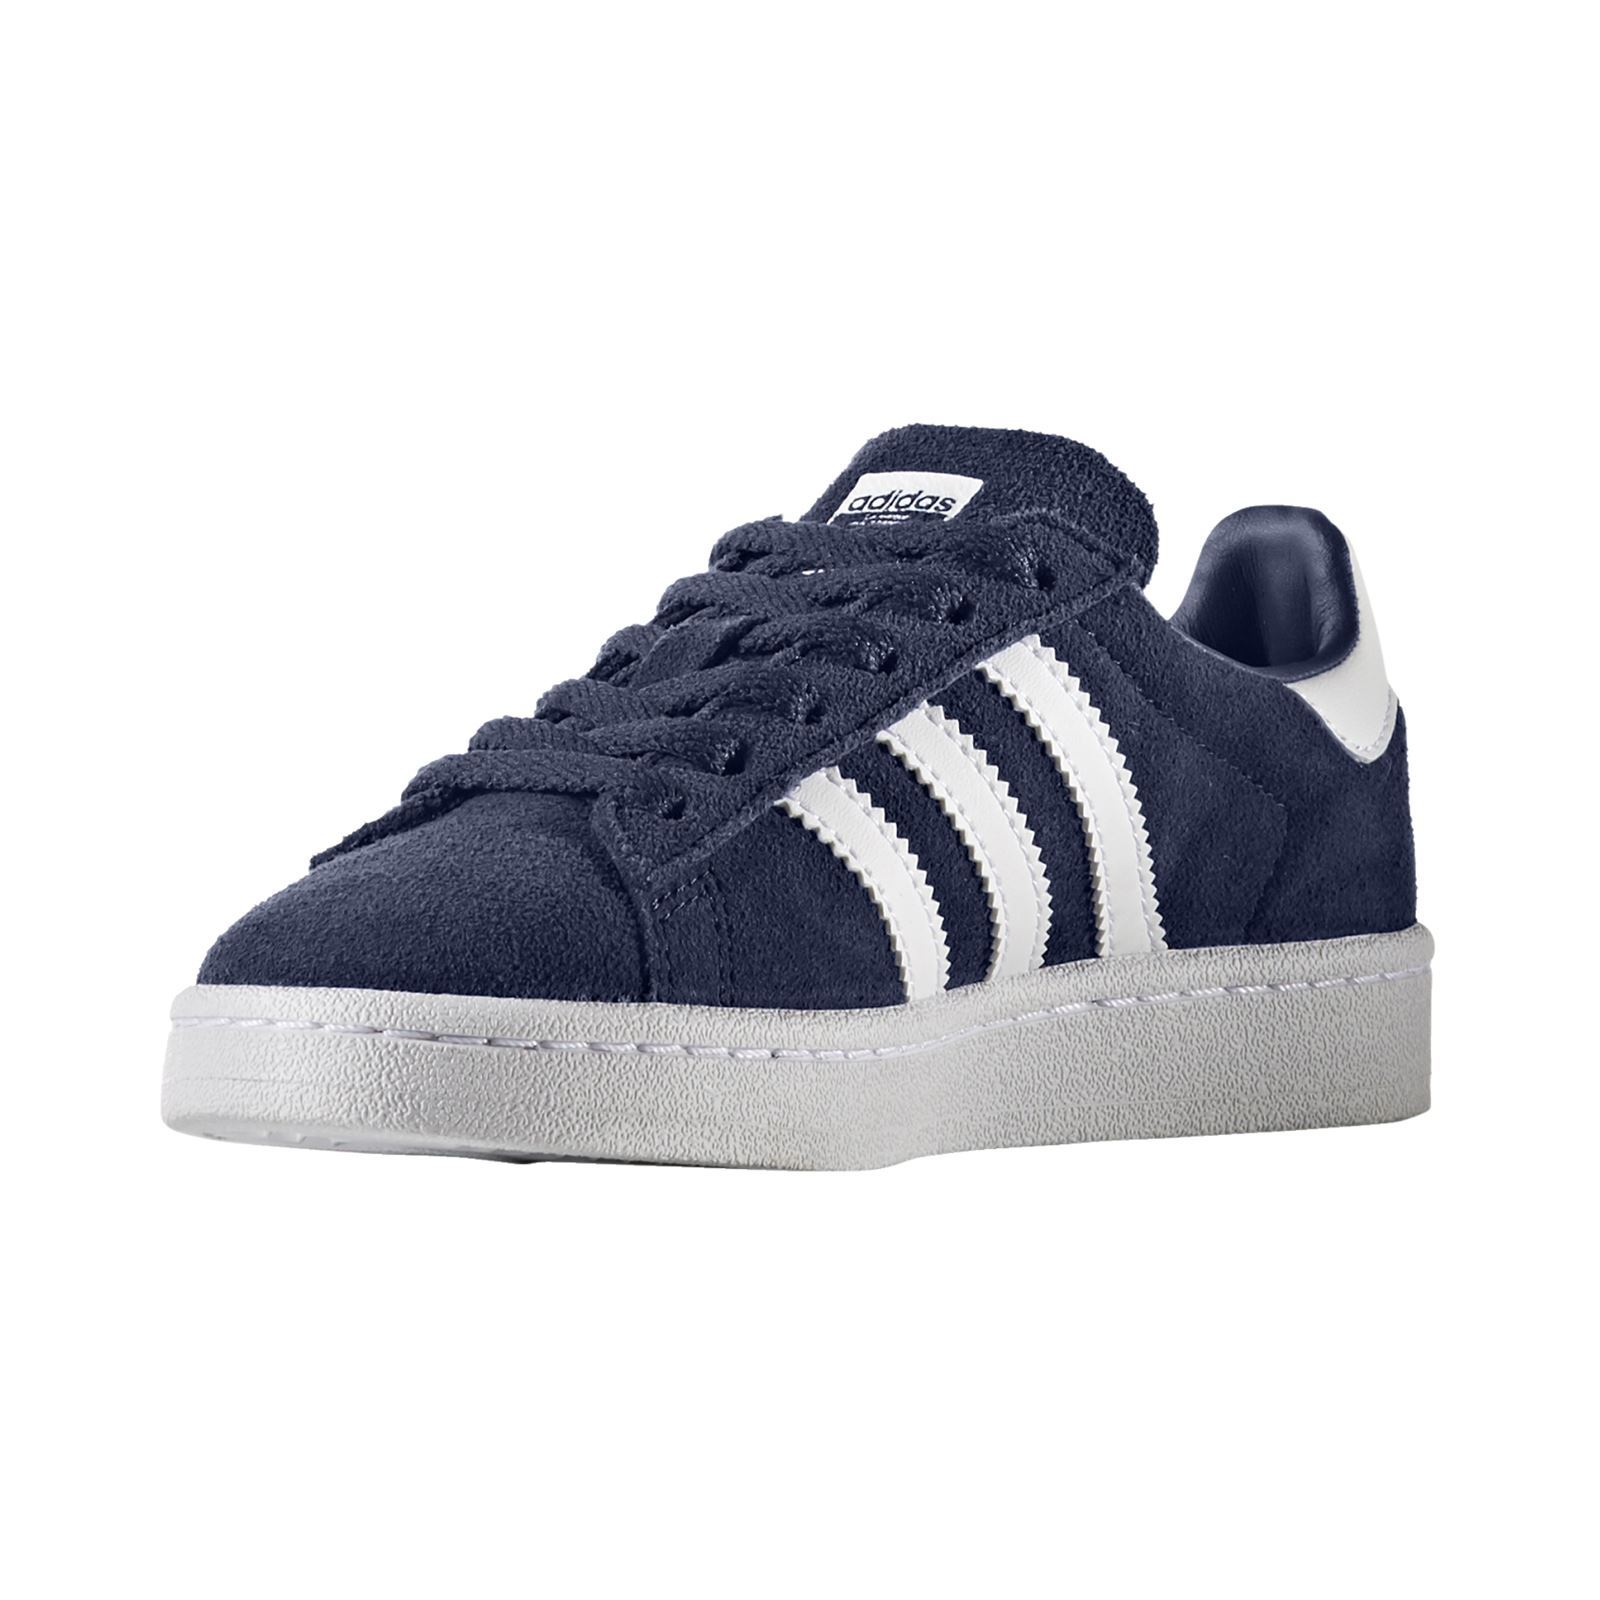 Adidas Originals Baskets Campus Bleu AK0qWe28e